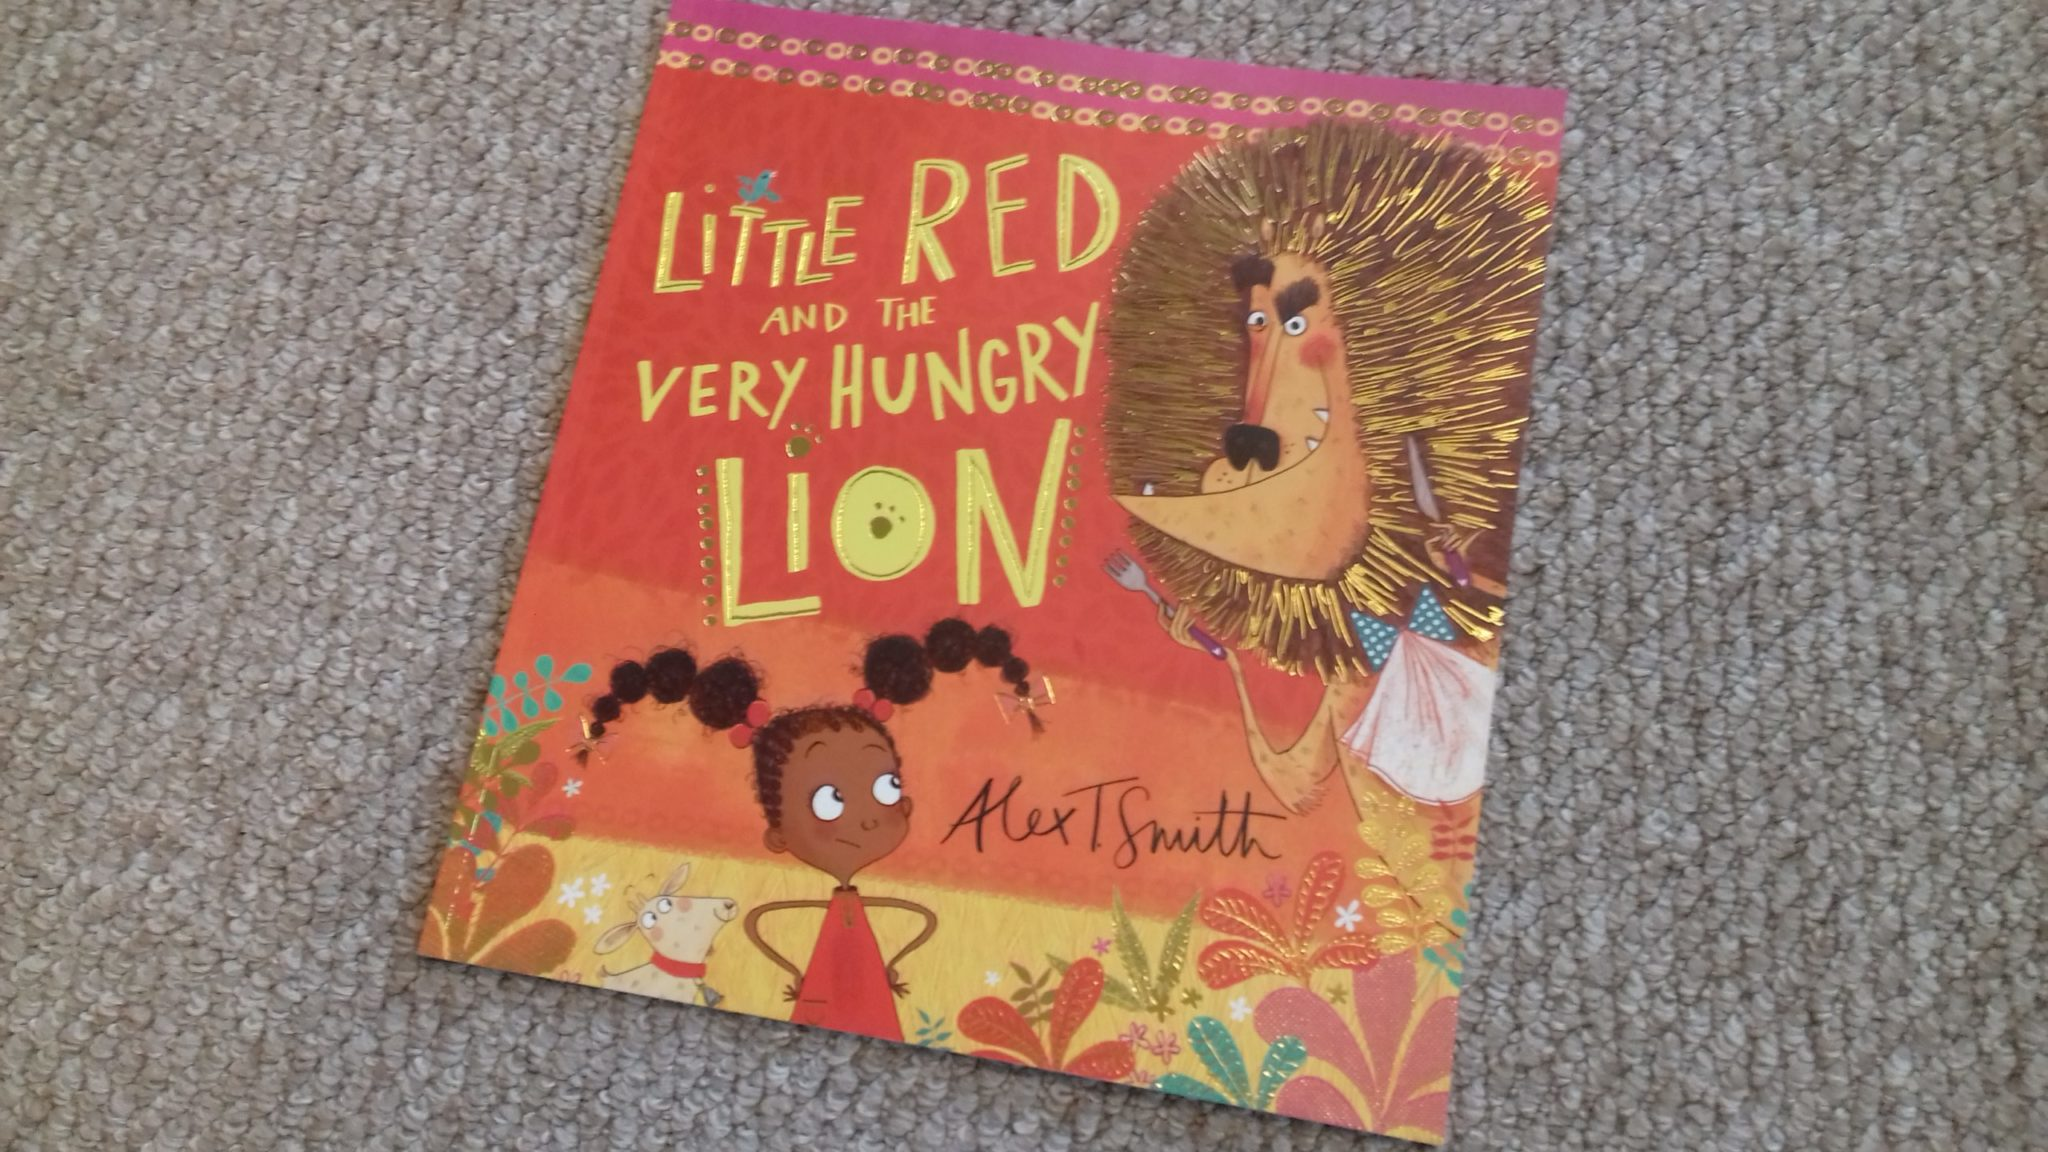 Little Red and the Very Hungry Lion - Looking for multicultural books for your children? This list features 25+ of the best diversity books about race and culture for the kids in your family or your classroom.